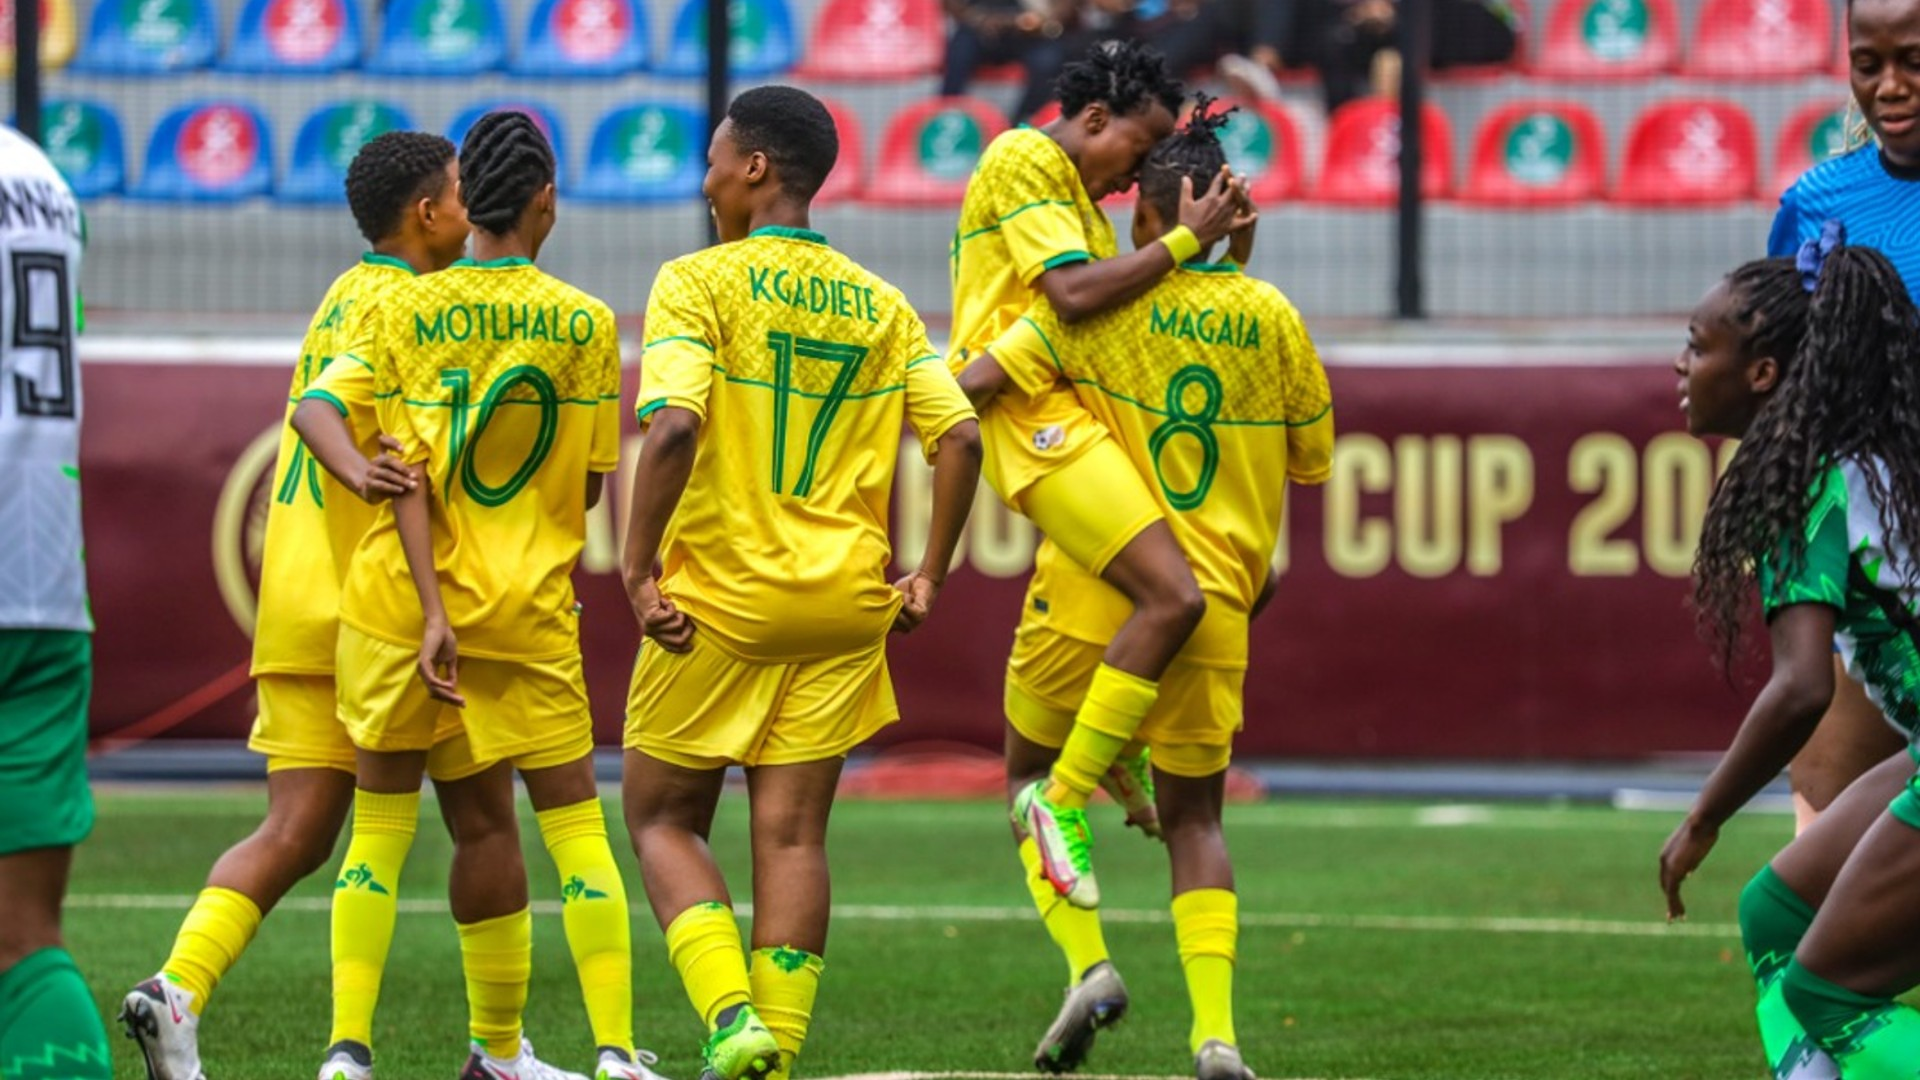 2022 AWCON Qualifiers: Mozambique 0-7 South Africa – Banyana Banyana rout hosts